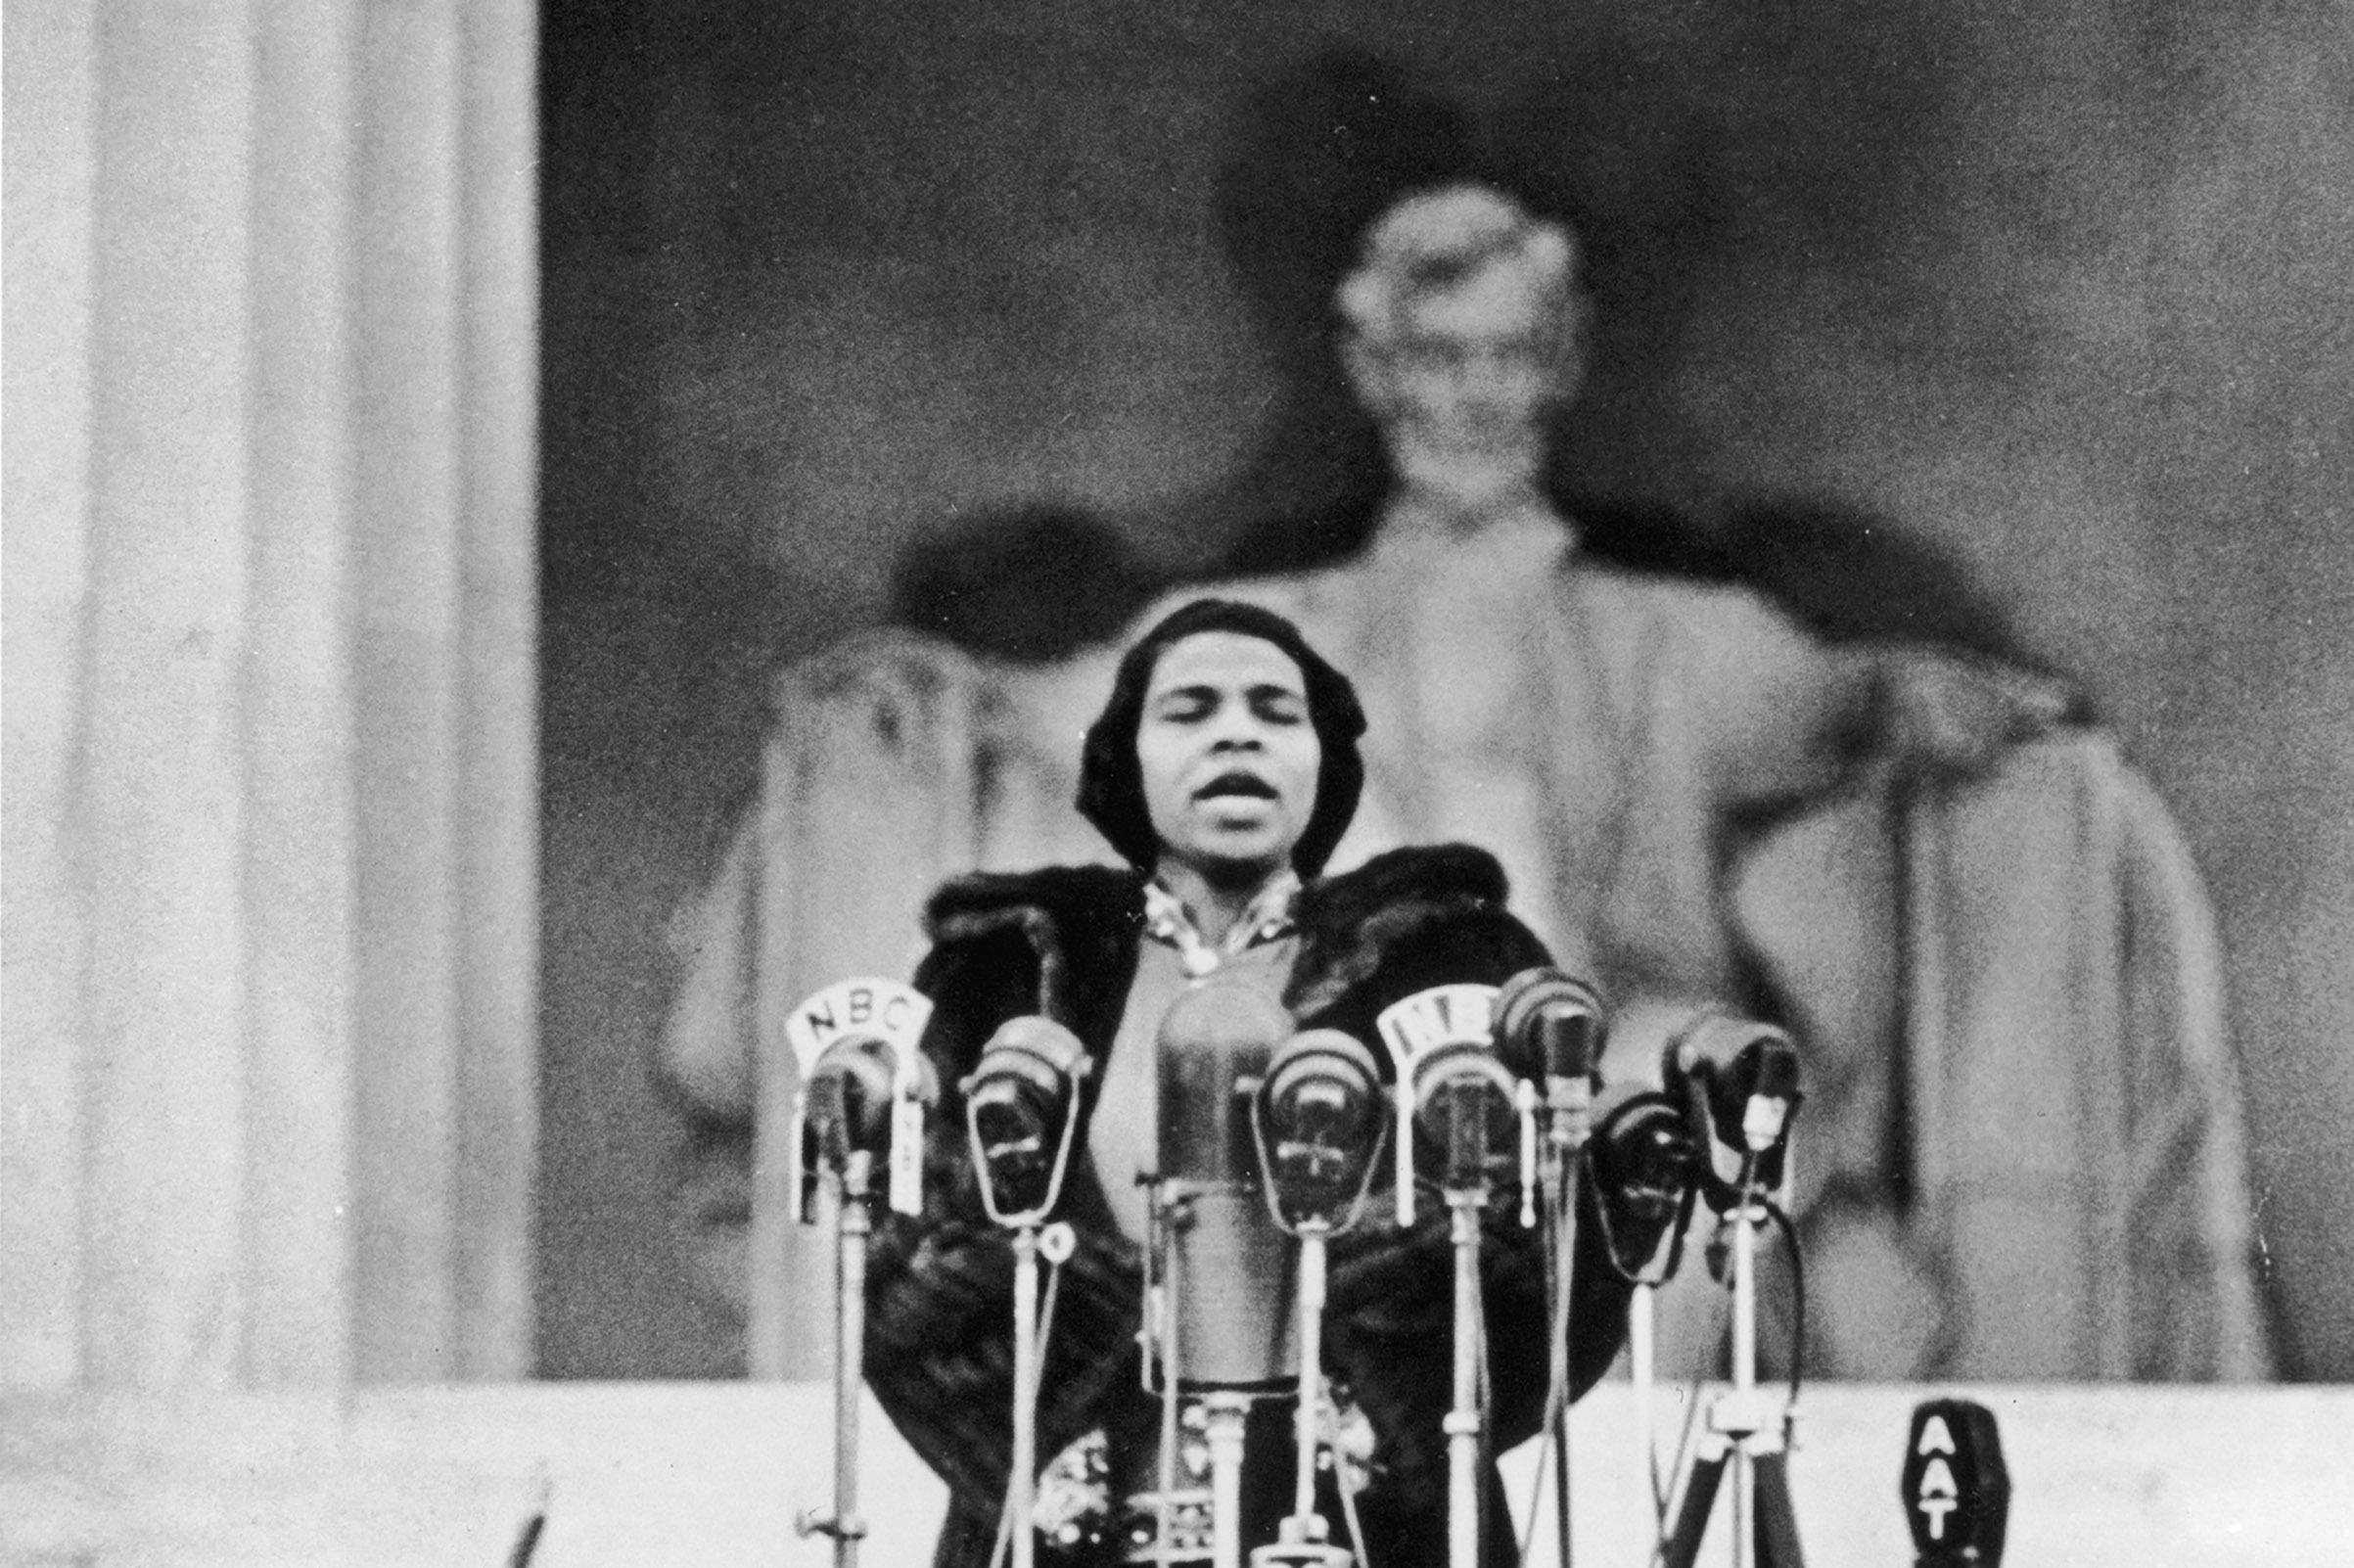 Singer Marian Anderson connects a history of black artistic excellence in America